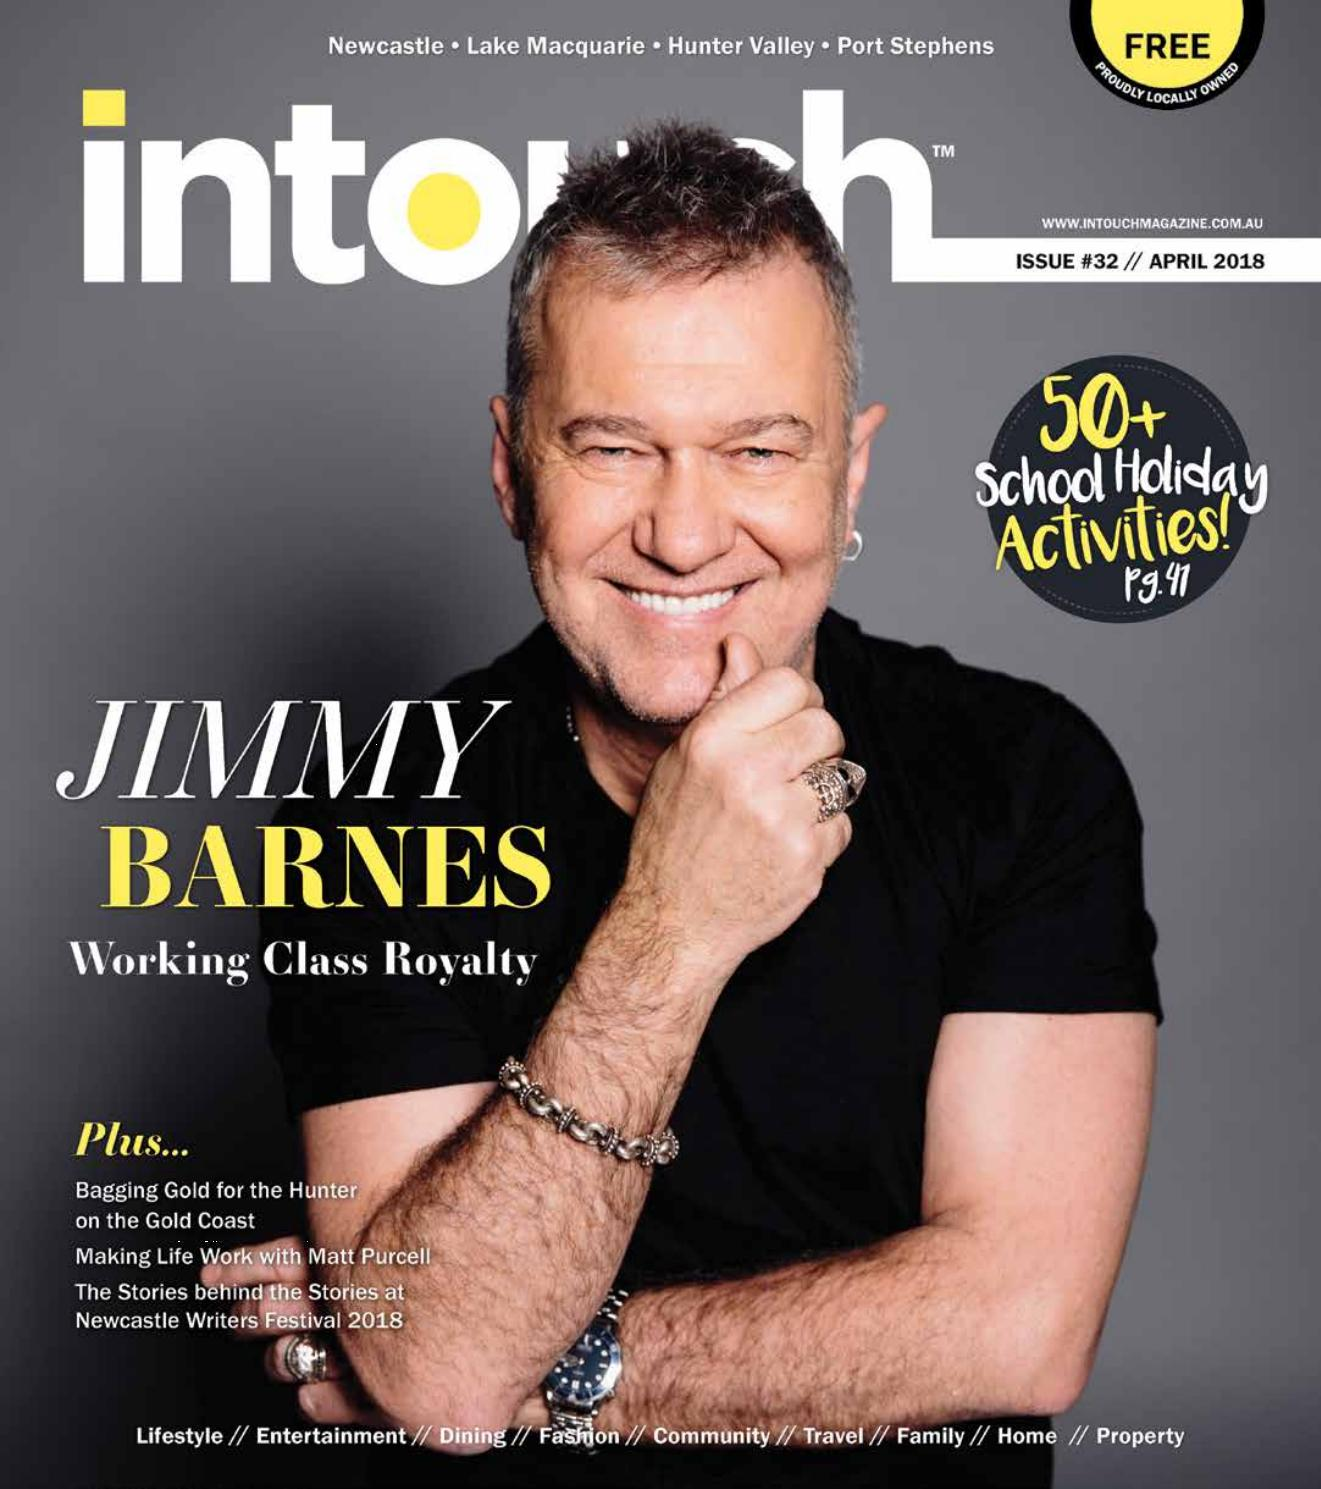 Newcastle, Lake Macquarie, Hunter Valley & Port Stephens | April 2018 by  INTOUCH MAGAZINE - issuu